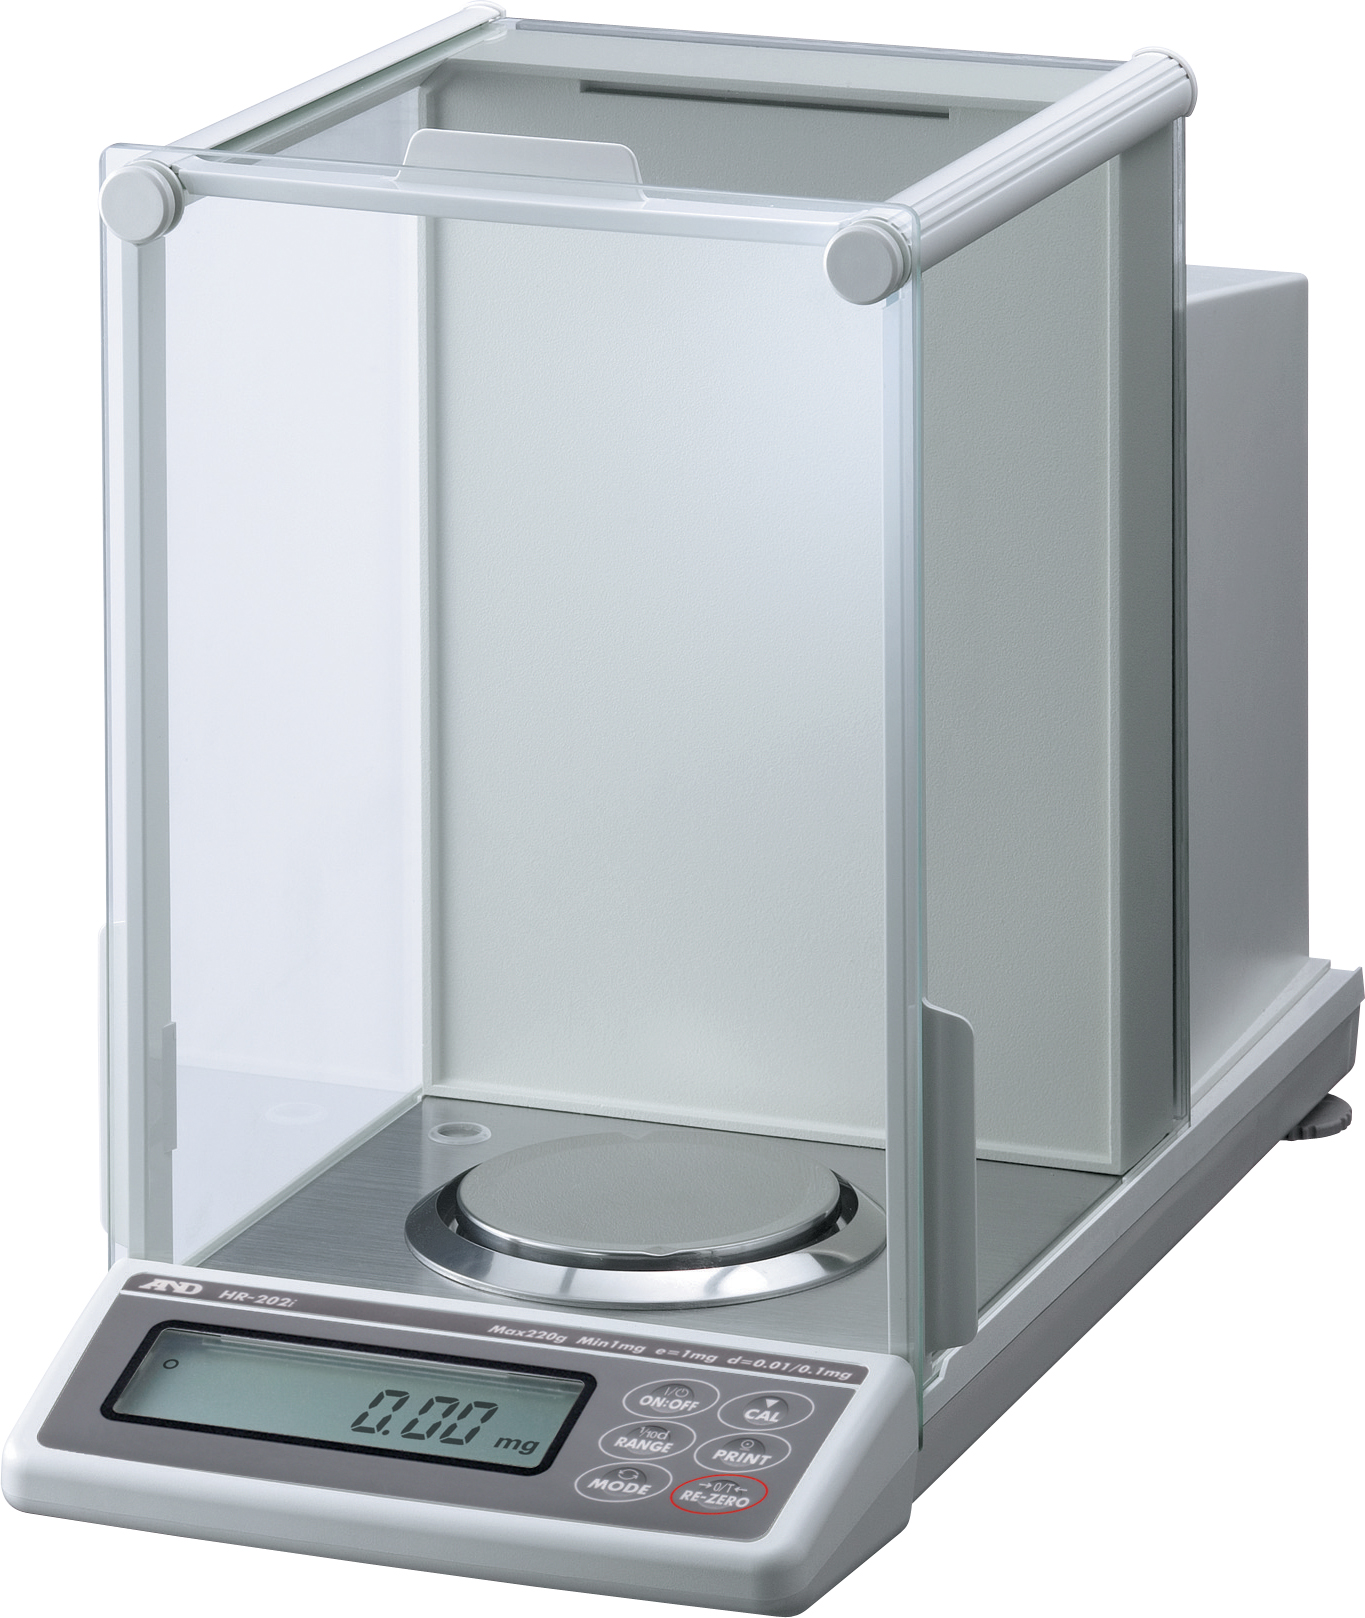 AN - GH-120/200/300 Analytical Balances